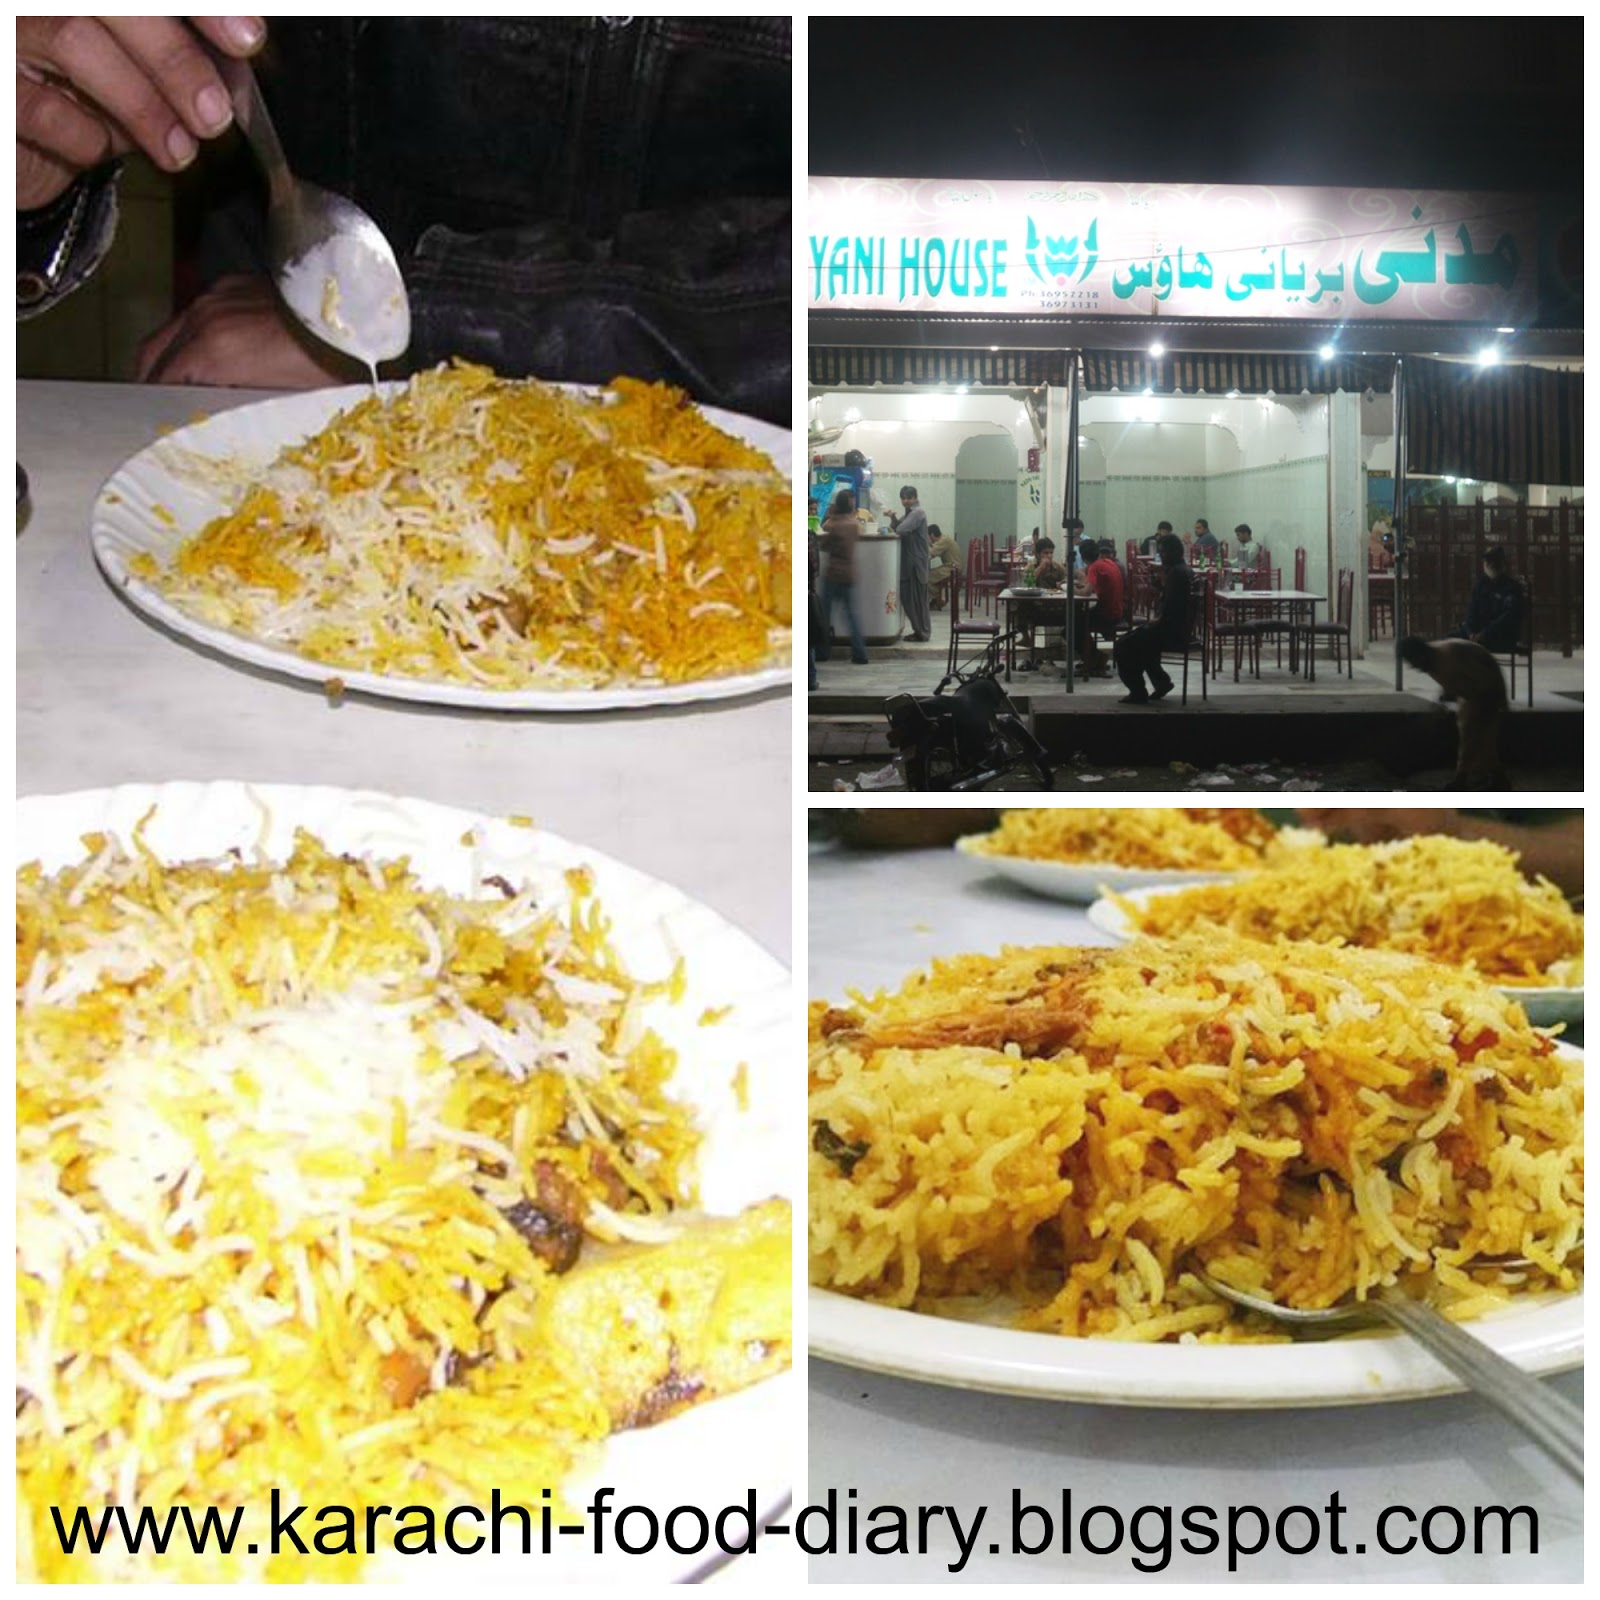 Karachi food dairy best biryani restaurants in karachi zone area in karachi strong aromatic right amount of chicken and rice quality was decent but lacked ideal spice level but the place is considered forumfinder Image collections